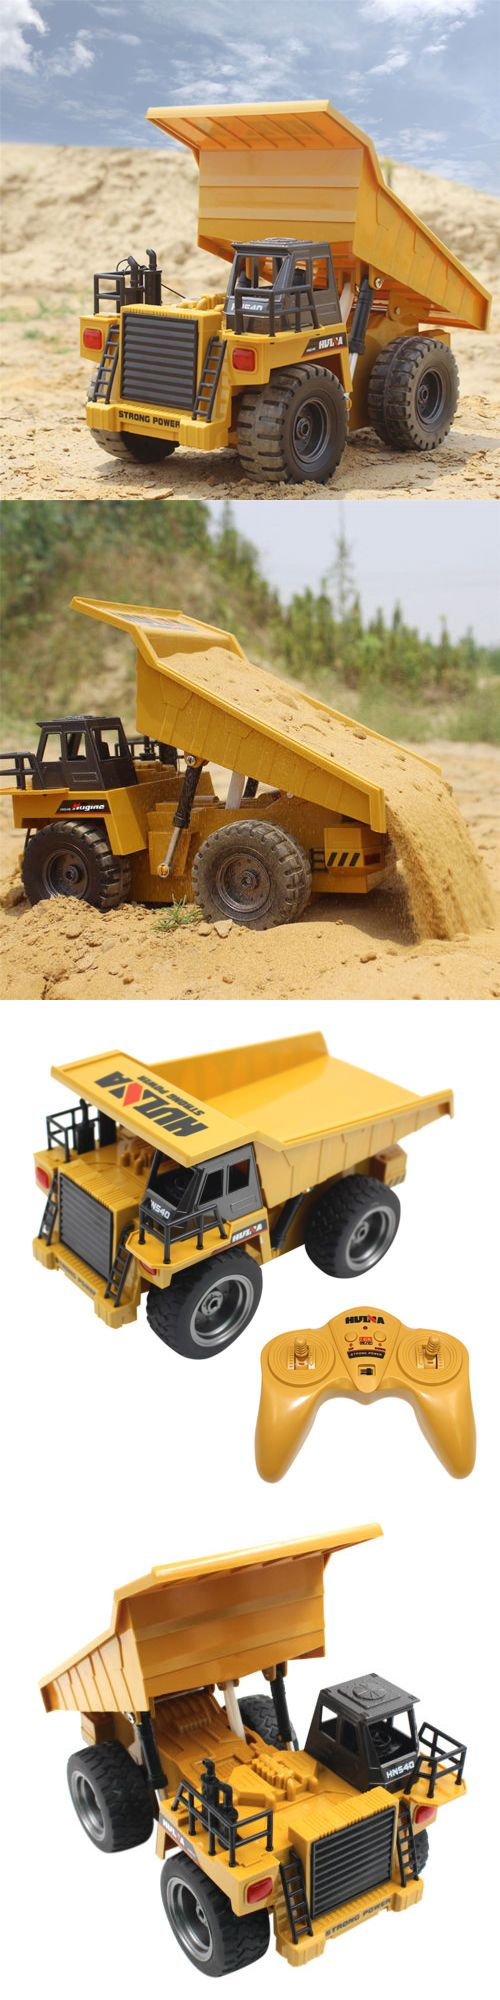 Industrial and Service Vehicles 182184: Huina 1540 6 Channel 1:18 2.4G Alloy Remote Control Dump Truck Rc Buggy Toy -> BUY IT NOW ONLY: $47.69 on eBay!